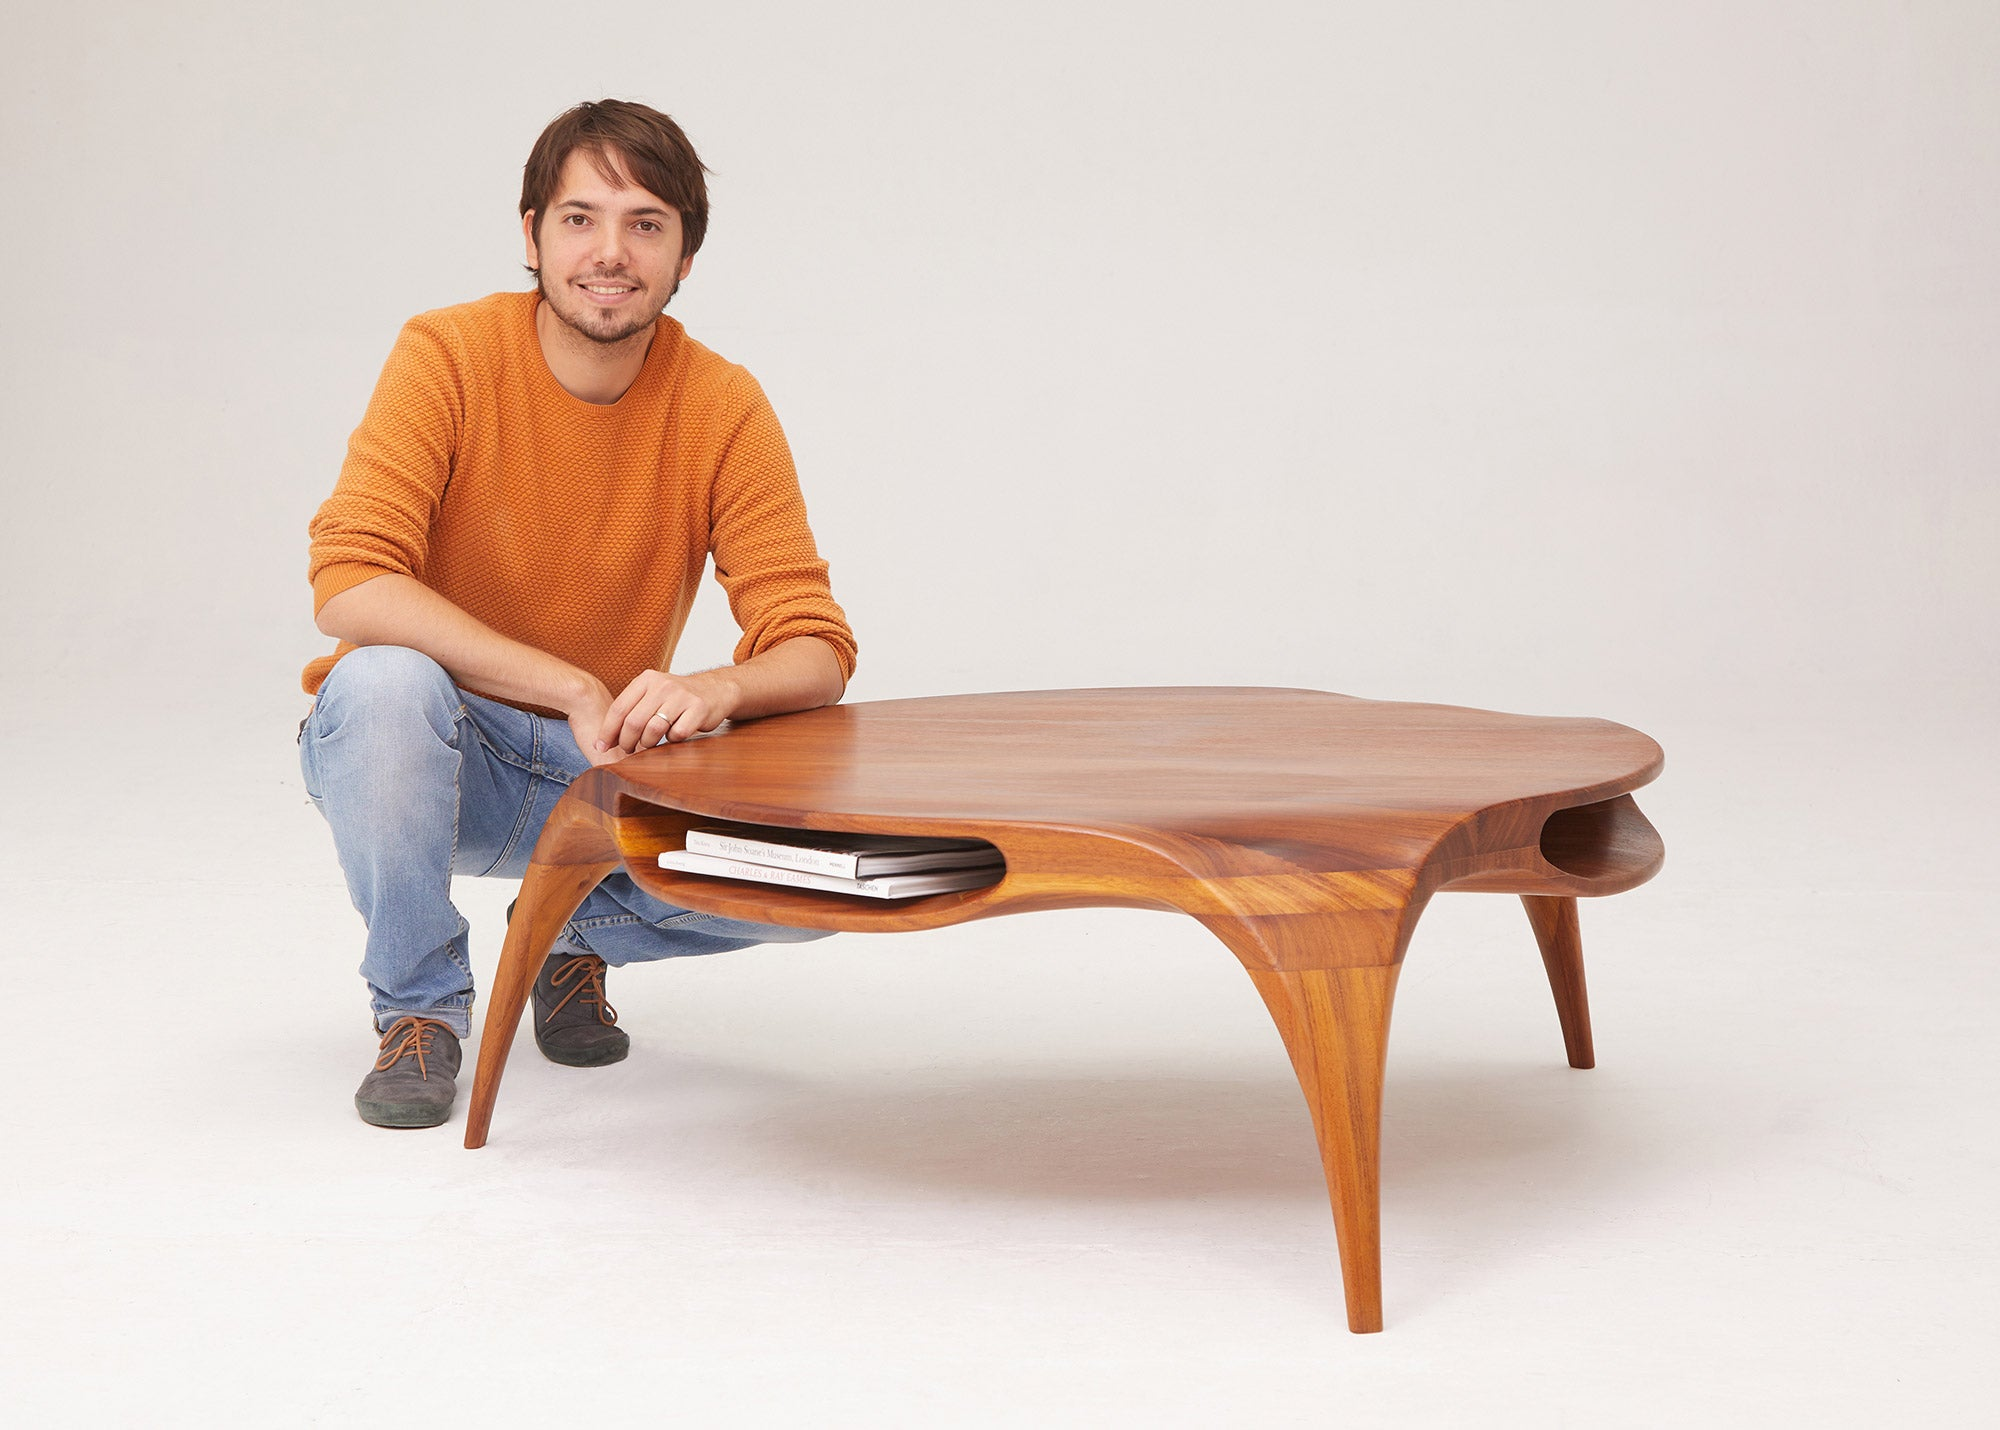 sankao coffee table henkalab pablo vidiella about